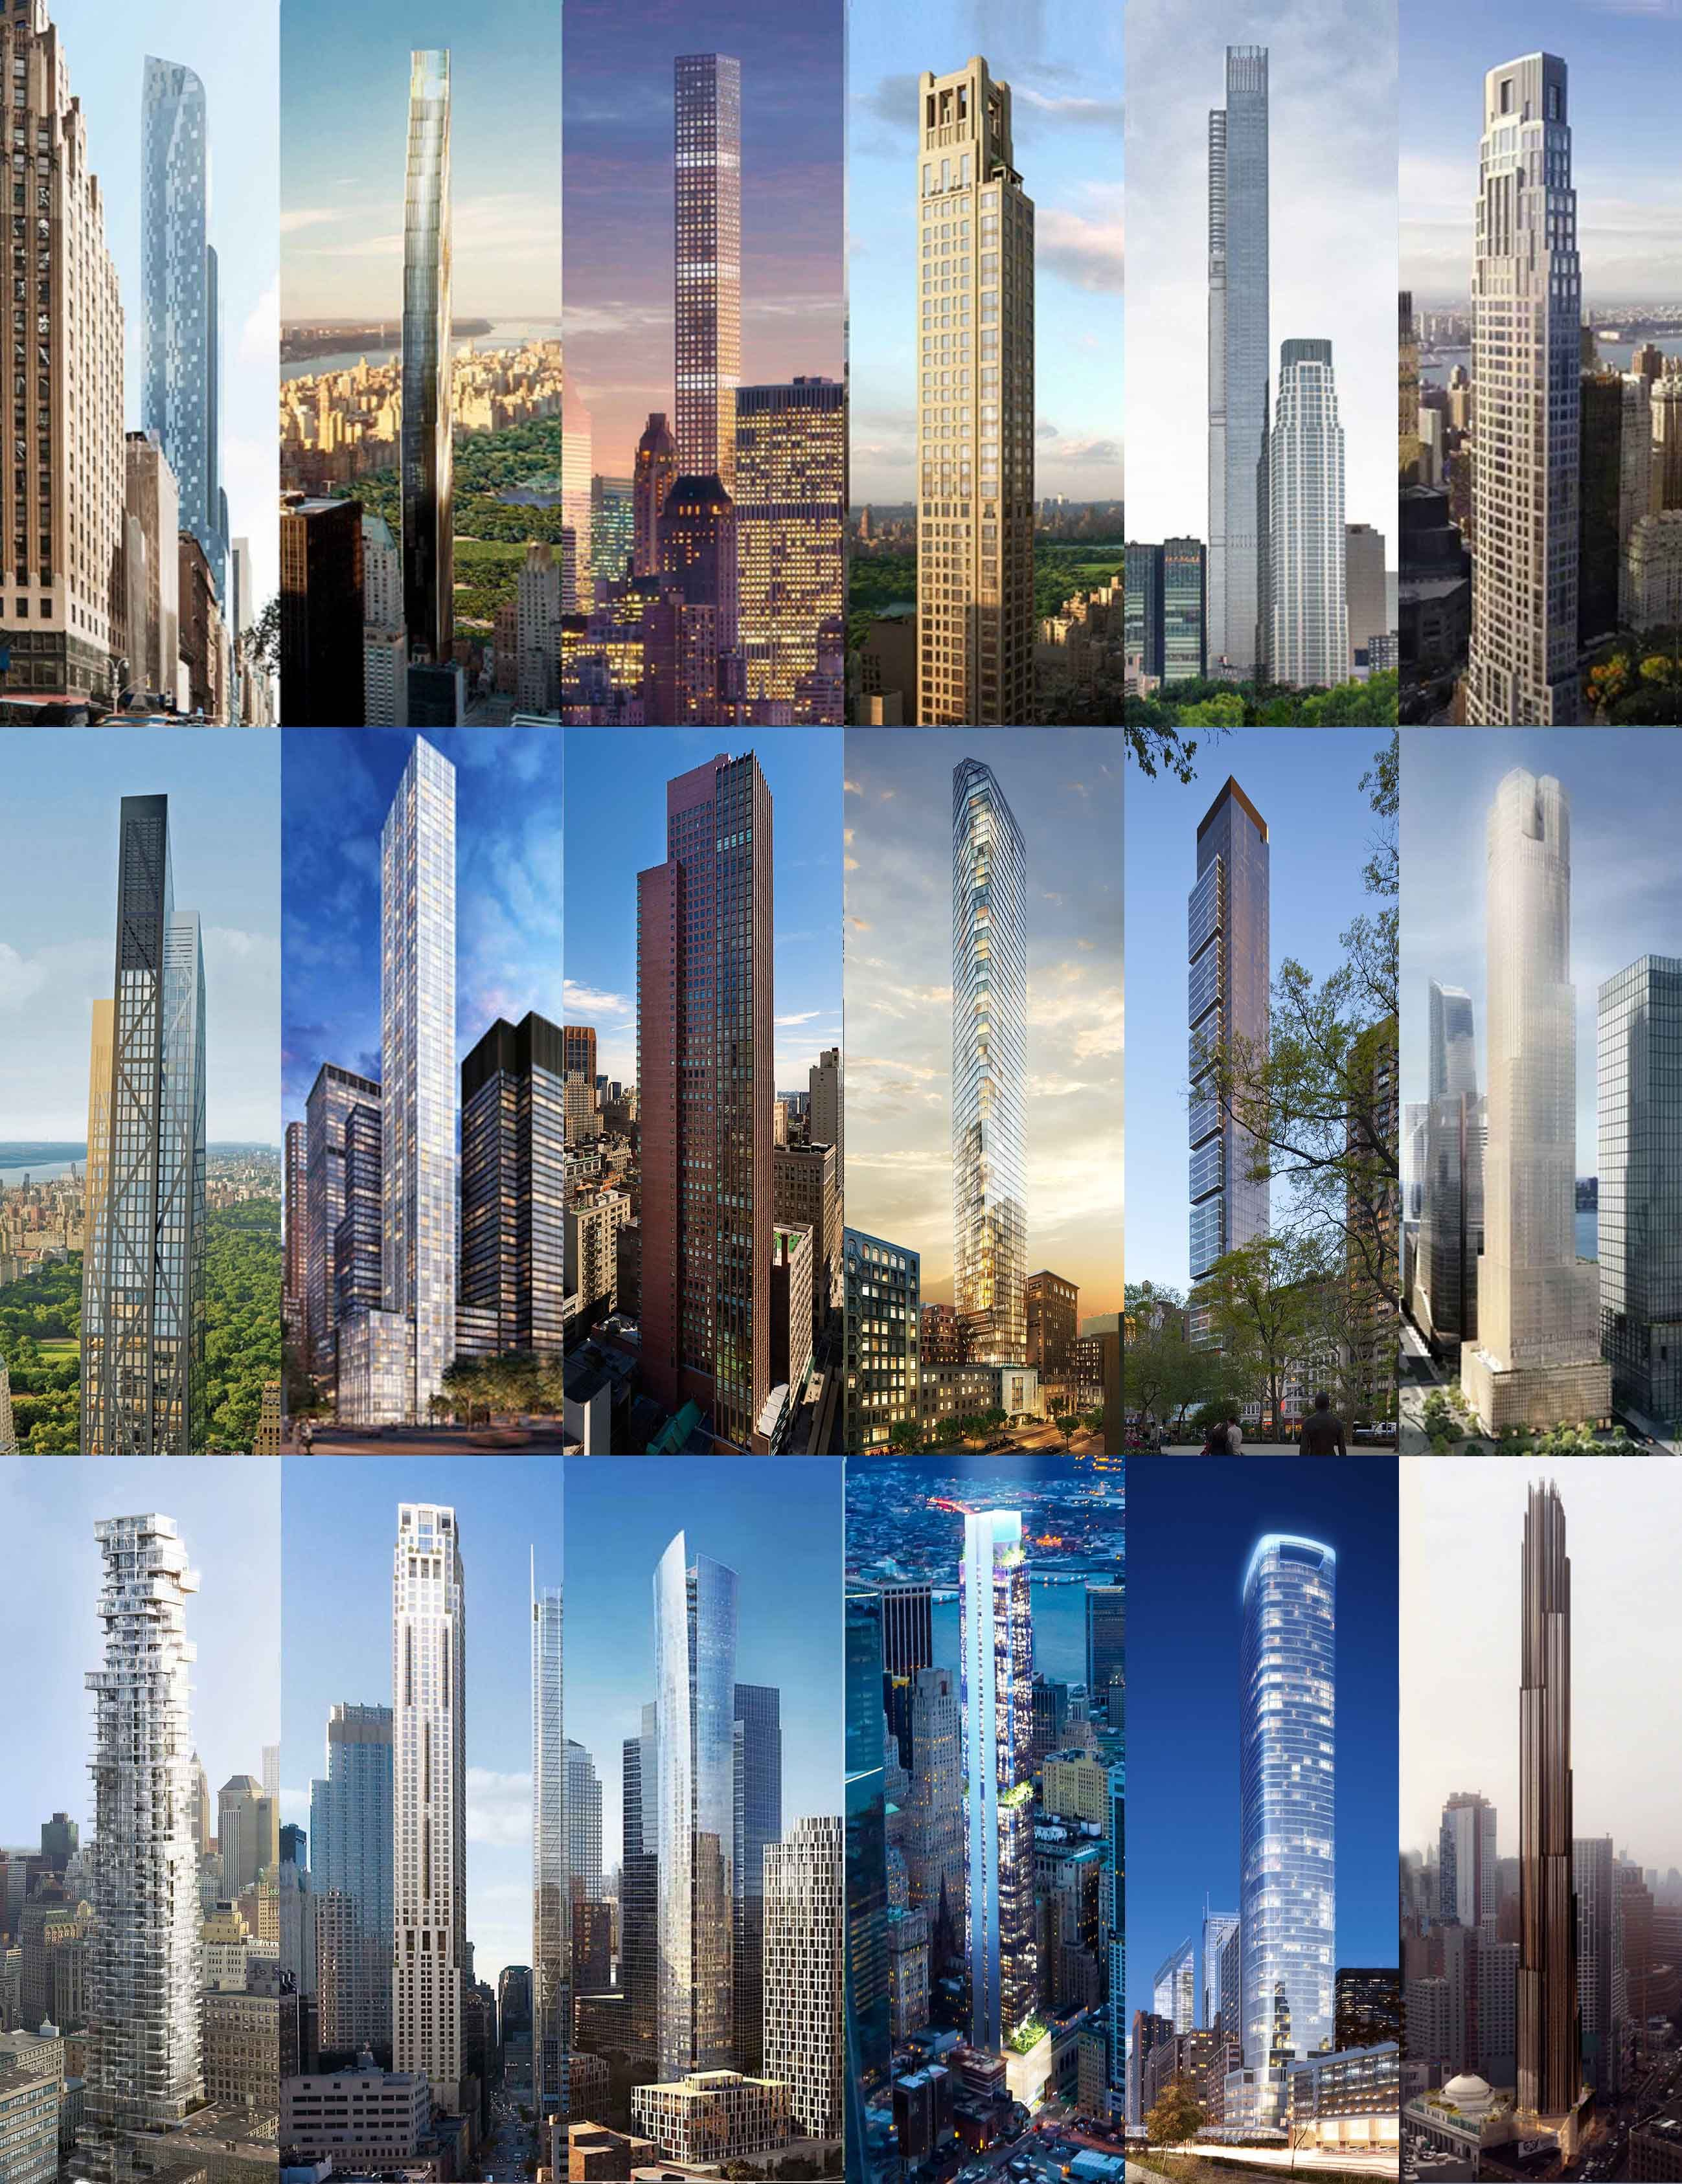 How Nyc S Super Skinny Skyscrapers Stack Up Next To The